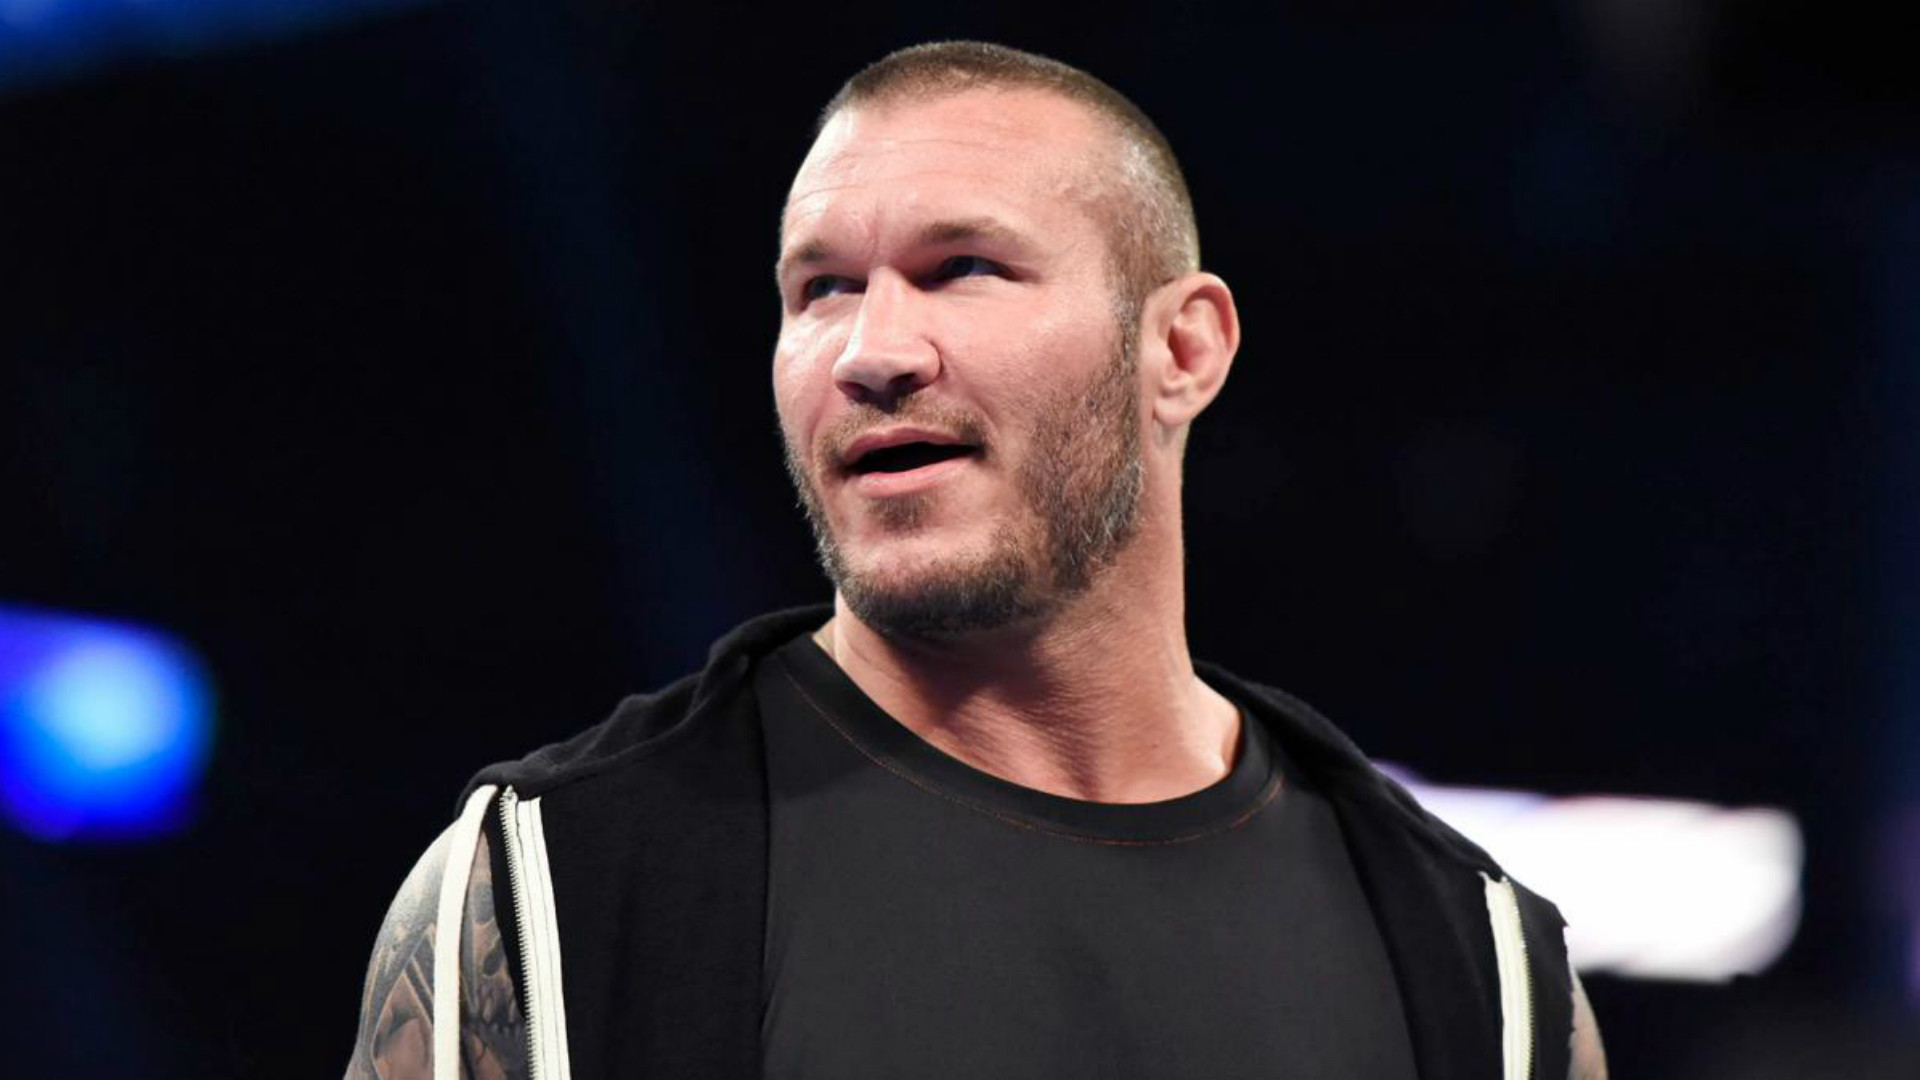 Randy Orton Hd Wallpaper 2018 55 Pictures